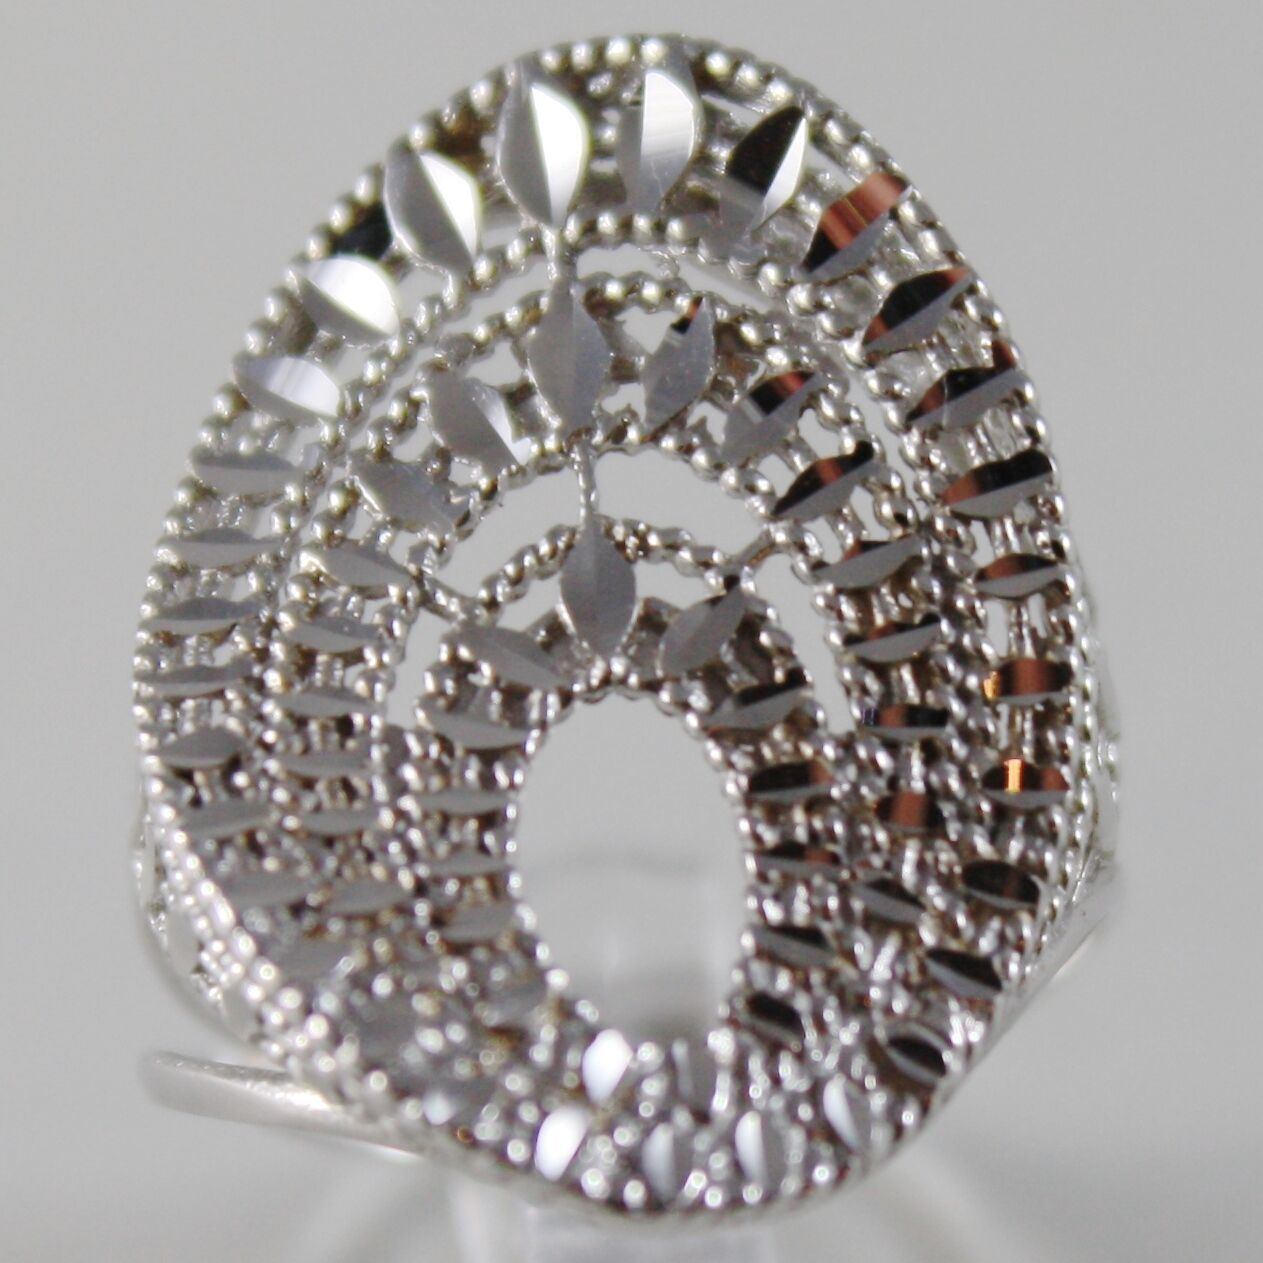 SOLID 18K WHITE GOLD BAND RING OVAL WAVE, BRIGHT, FINELY WORKED MADE IN ITALY